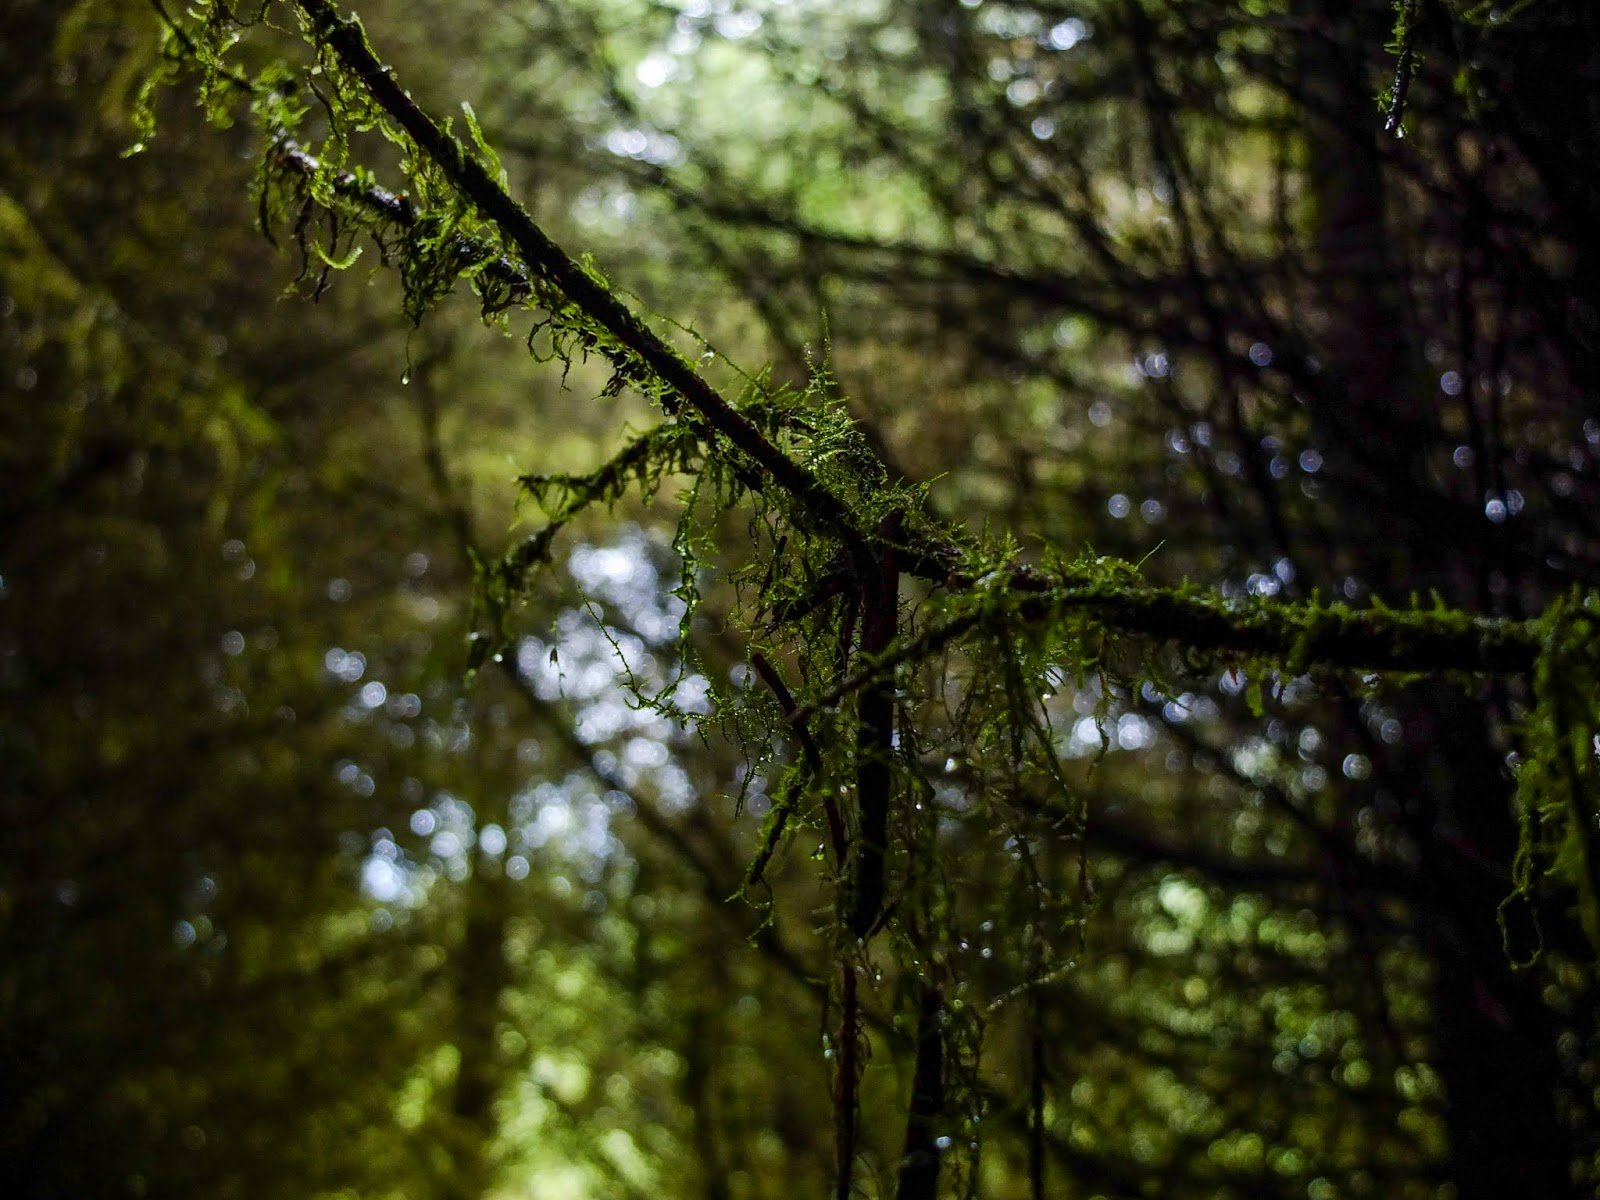 Dew covered mossy tree branches inside a forest.